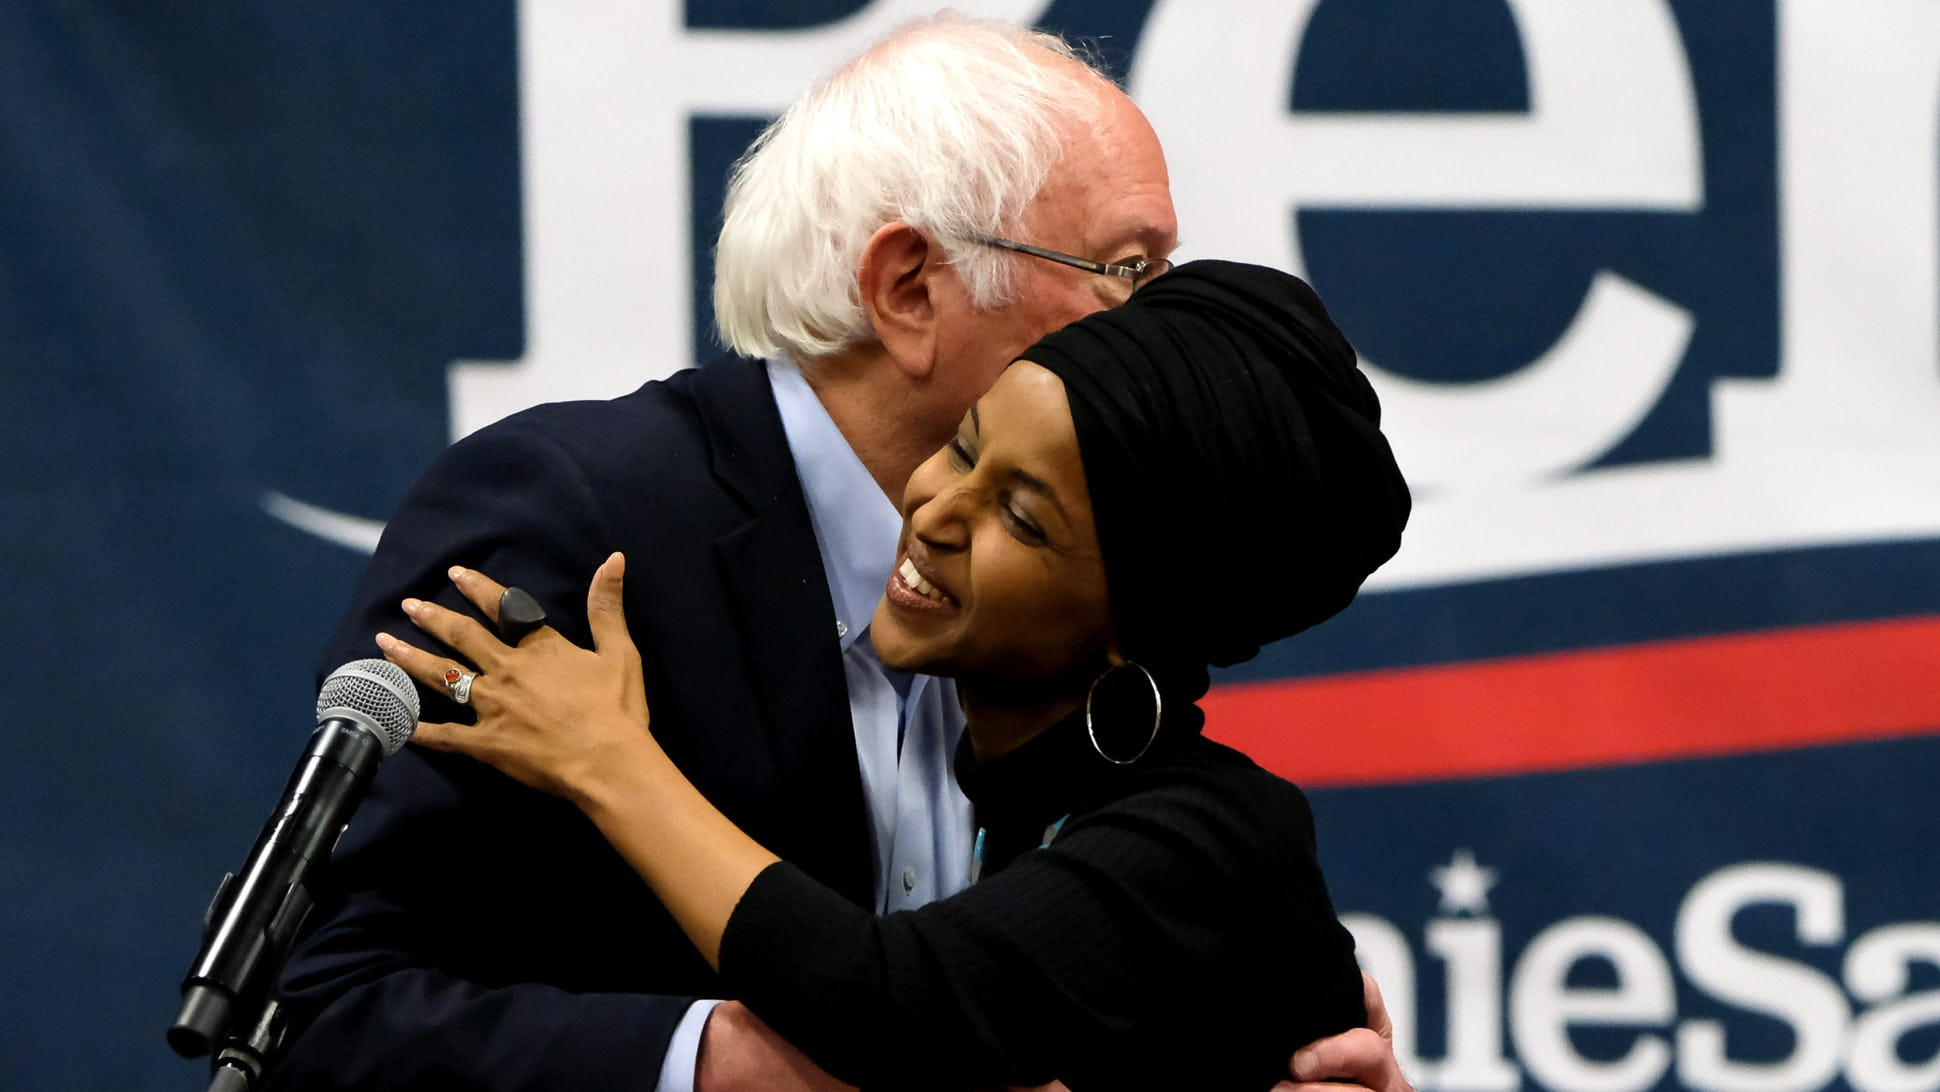 Bernie Sanders, now the front runner for the Democratic presidential nomination, attacked the American Israel Public Affairs Committee (AIPAC) and they in turn, condemned him for it.